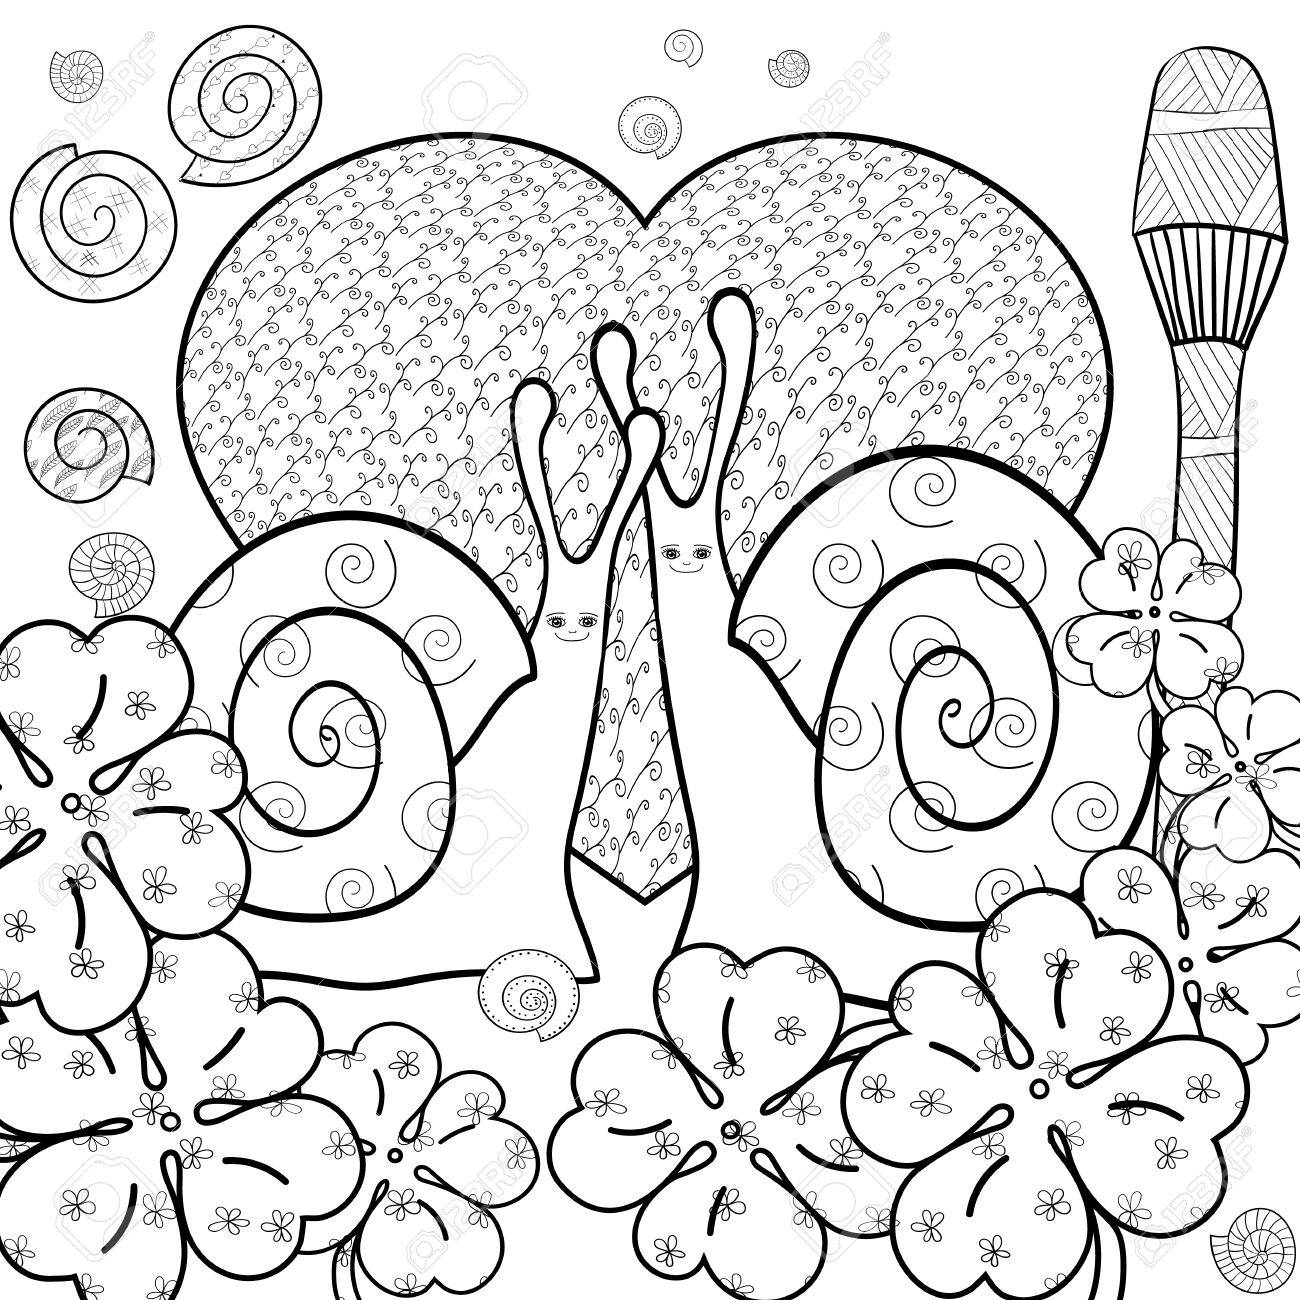 Cute Snail Adult Coloring Book Page Snails In Whimsical Garden